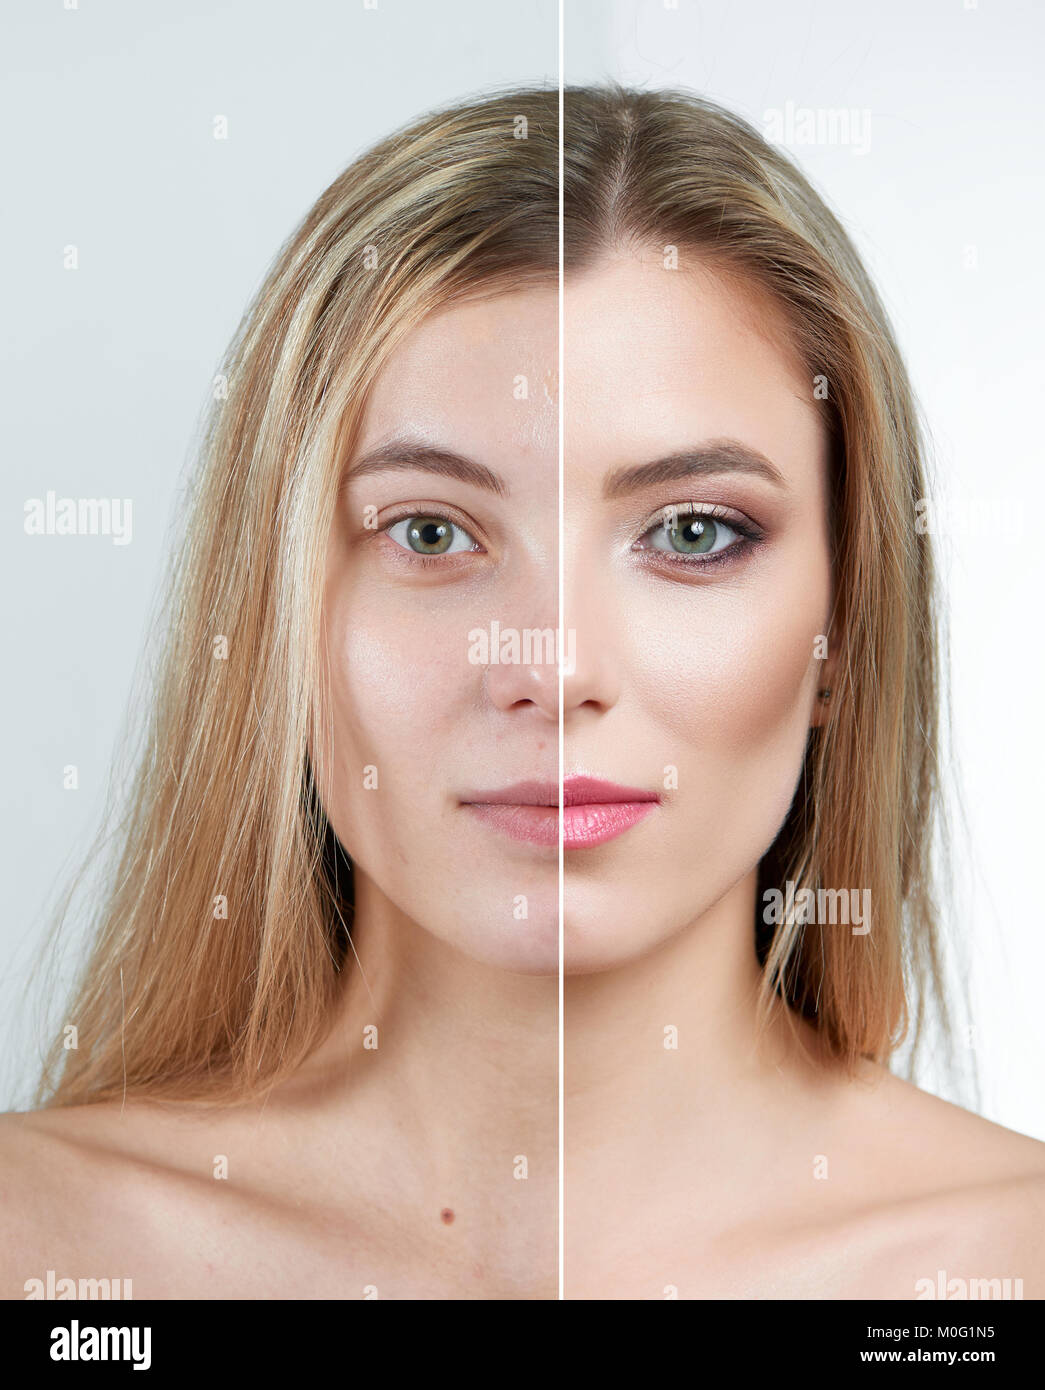 a4cf5b06375 A portrait of a blonde girl, one part of a face being clean and no